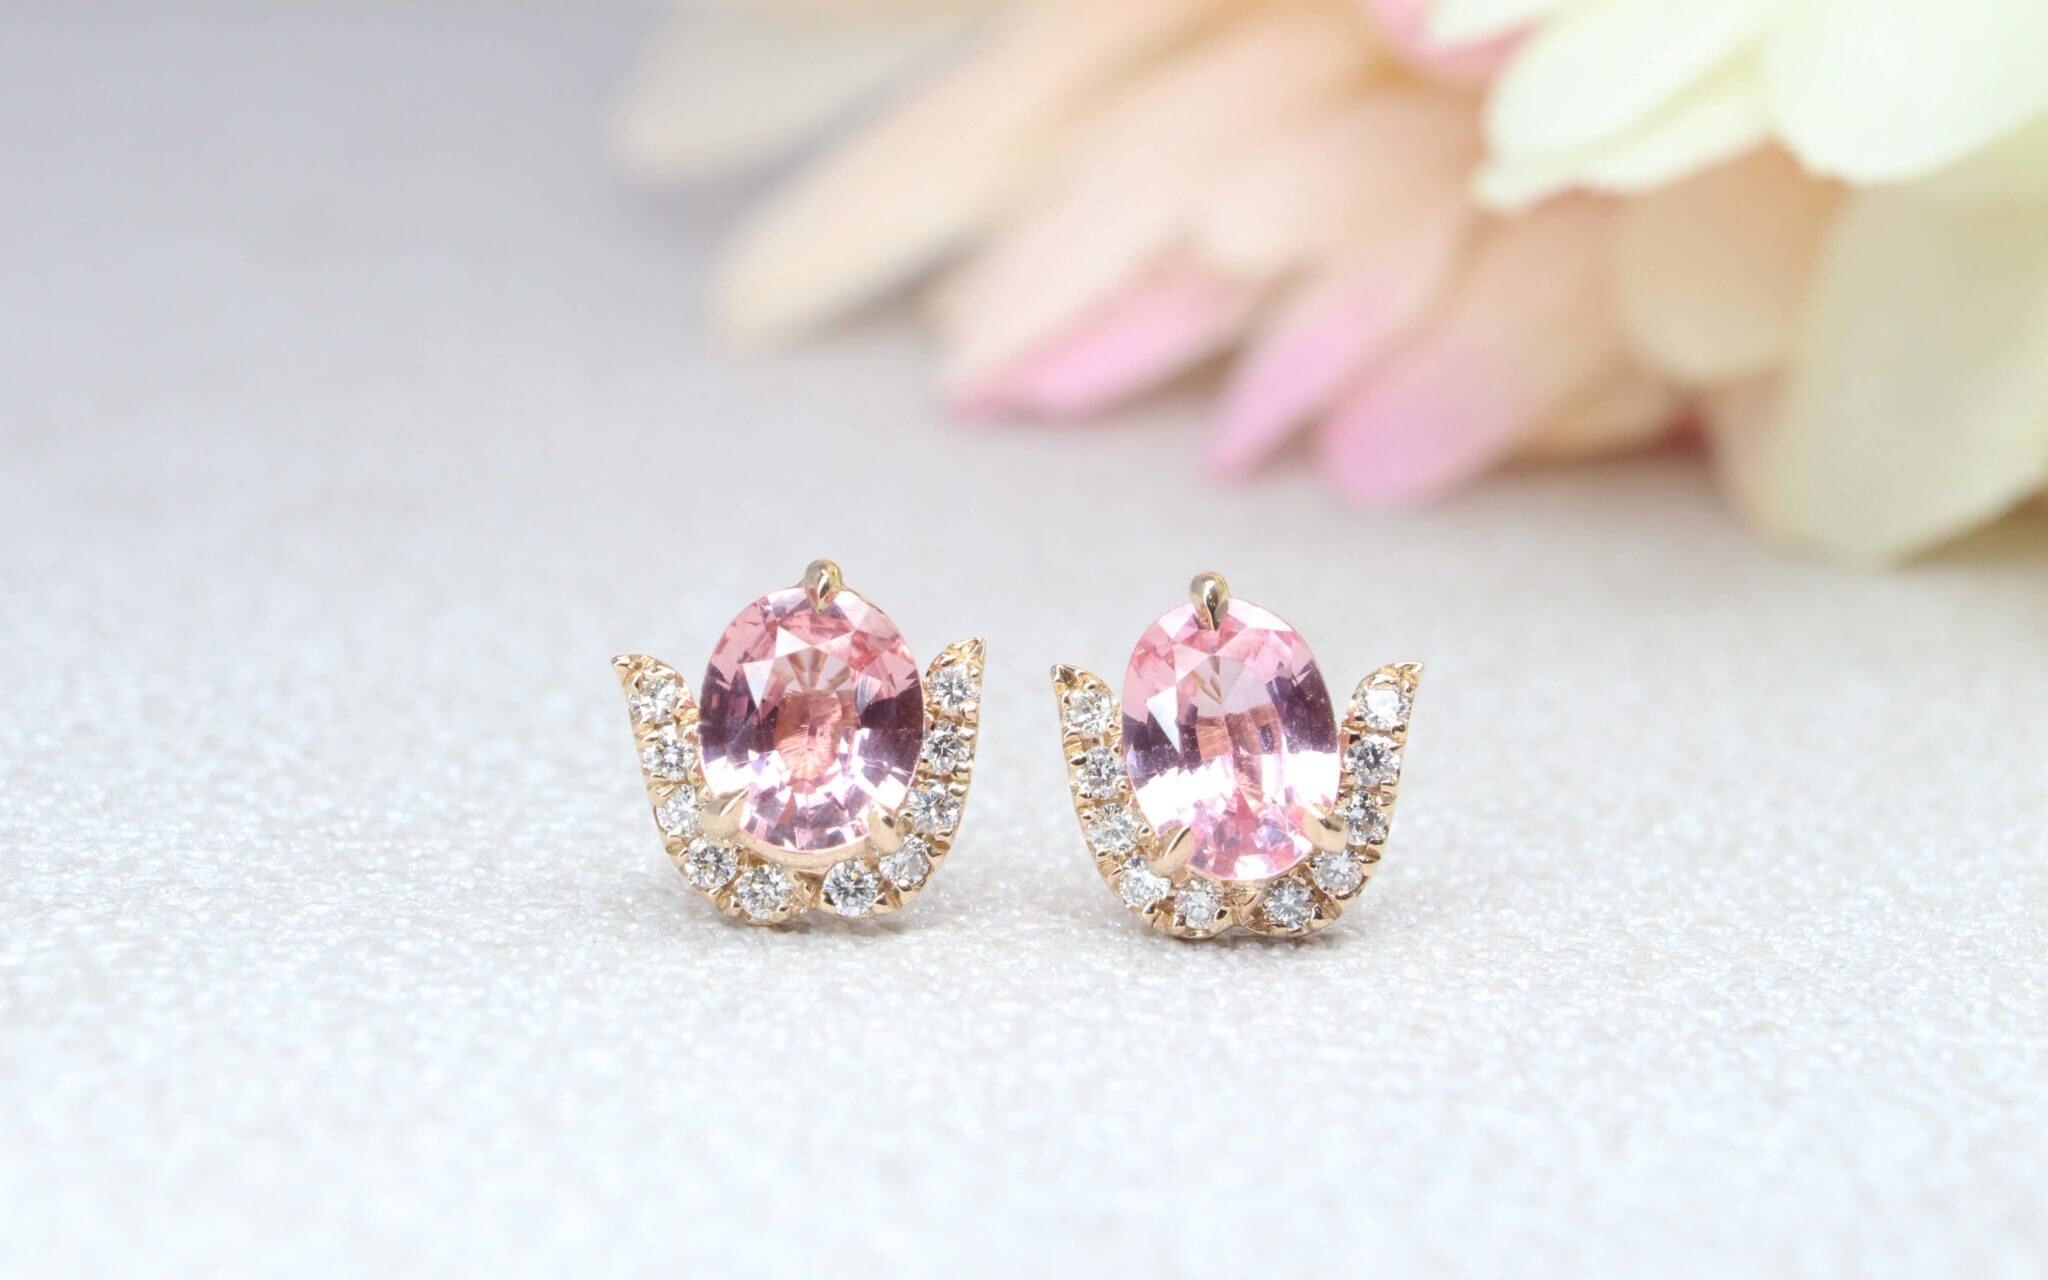 Customised earring with Padparadscha Sapphire gemstone, orangy pink colour gemstone - Customised Gemstone Jewellery | Local Singapore Designer Jeweller in fine jewelry with Padparadscha Sapphire gemstone